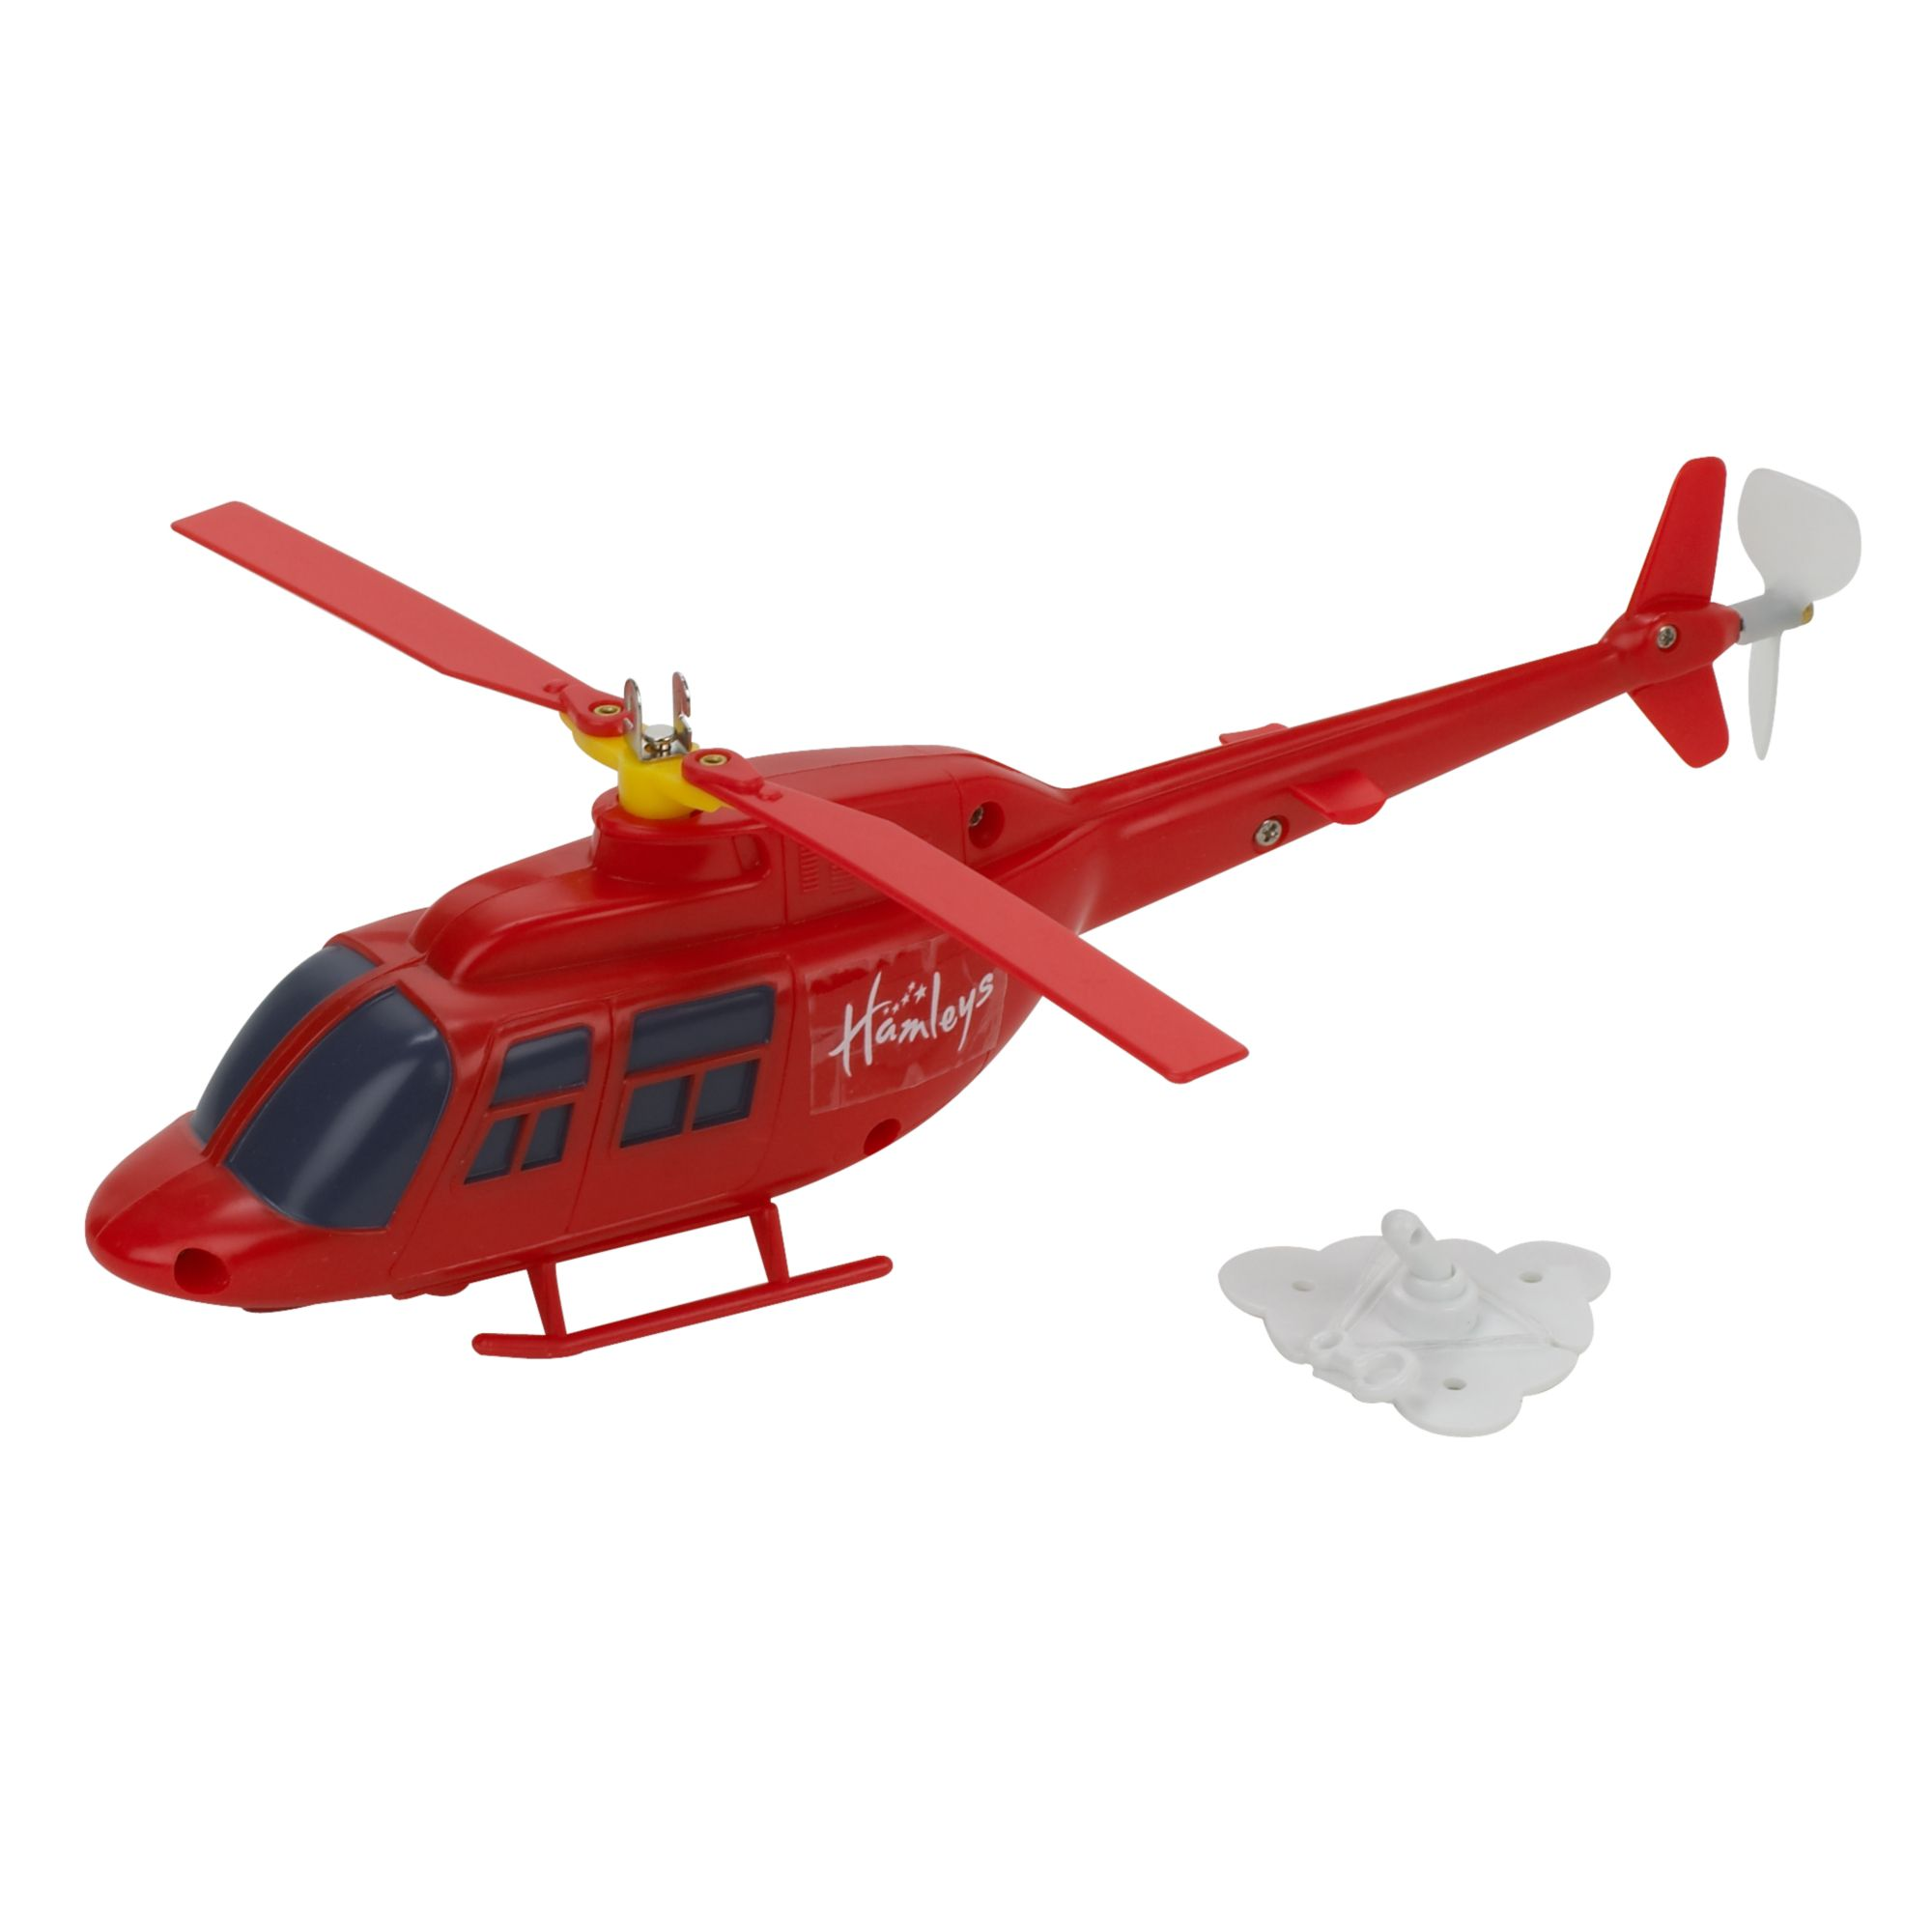 Hamleys rota-copter